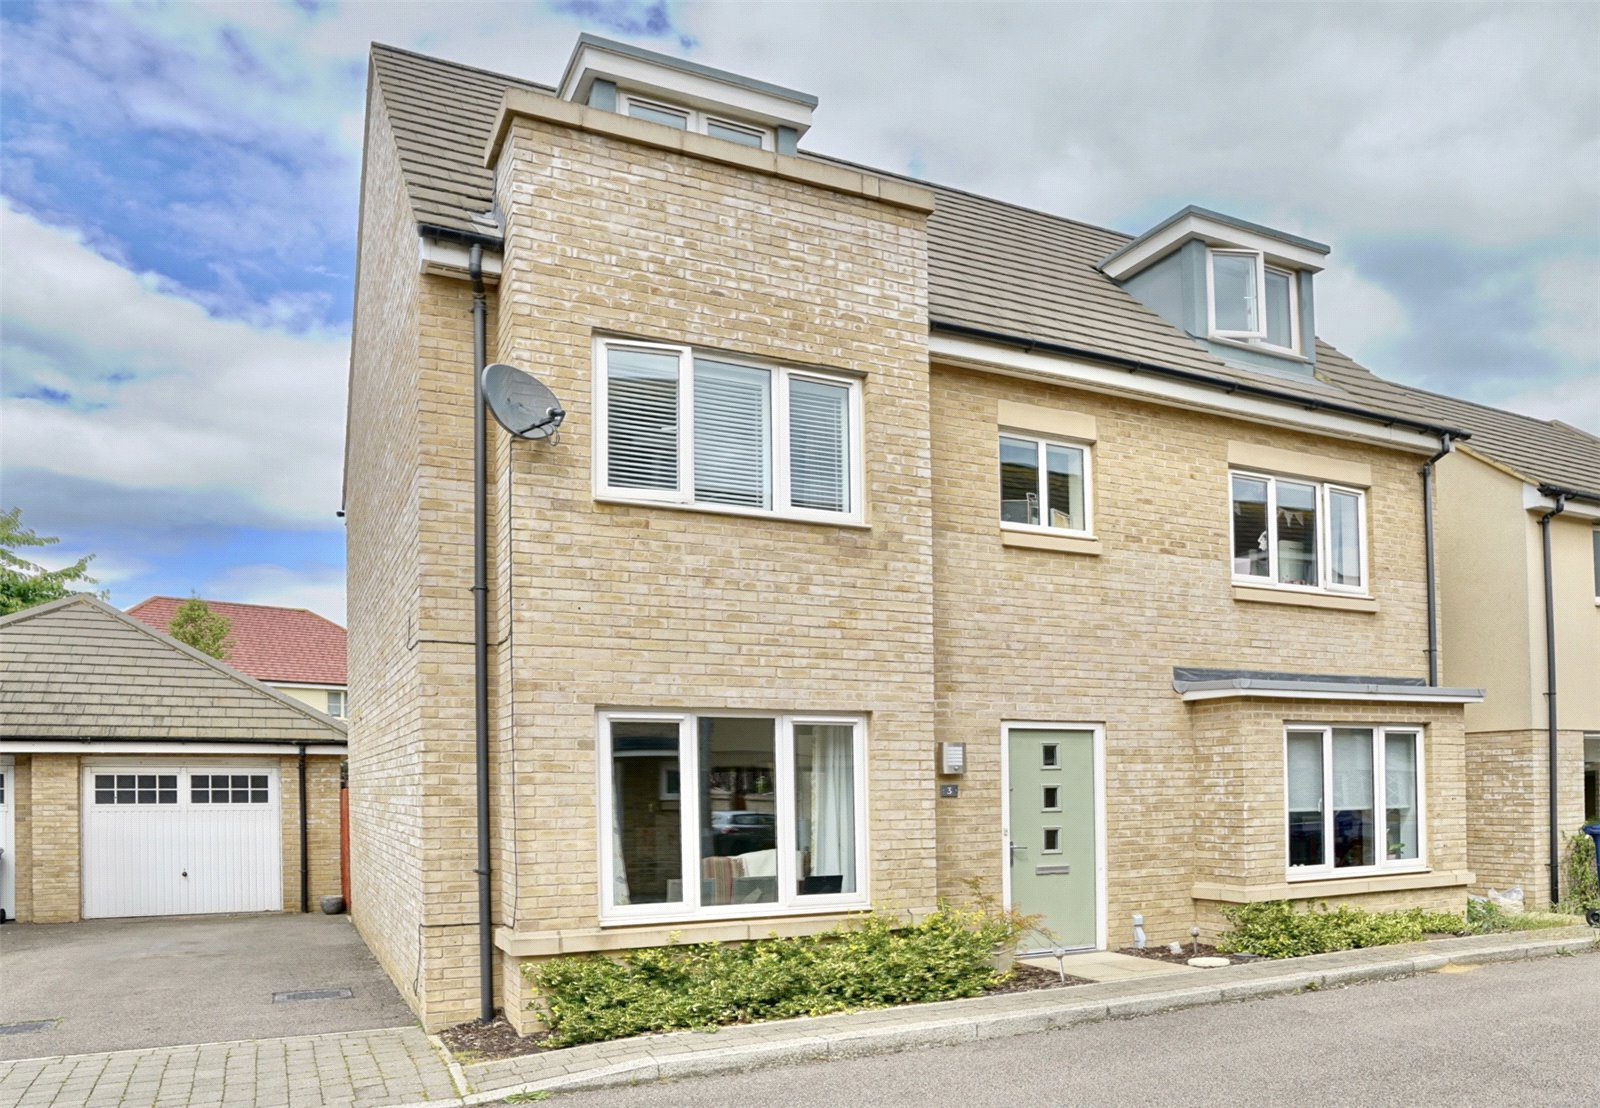 5 bed house for sale in Day Close, St. Neots, PE19